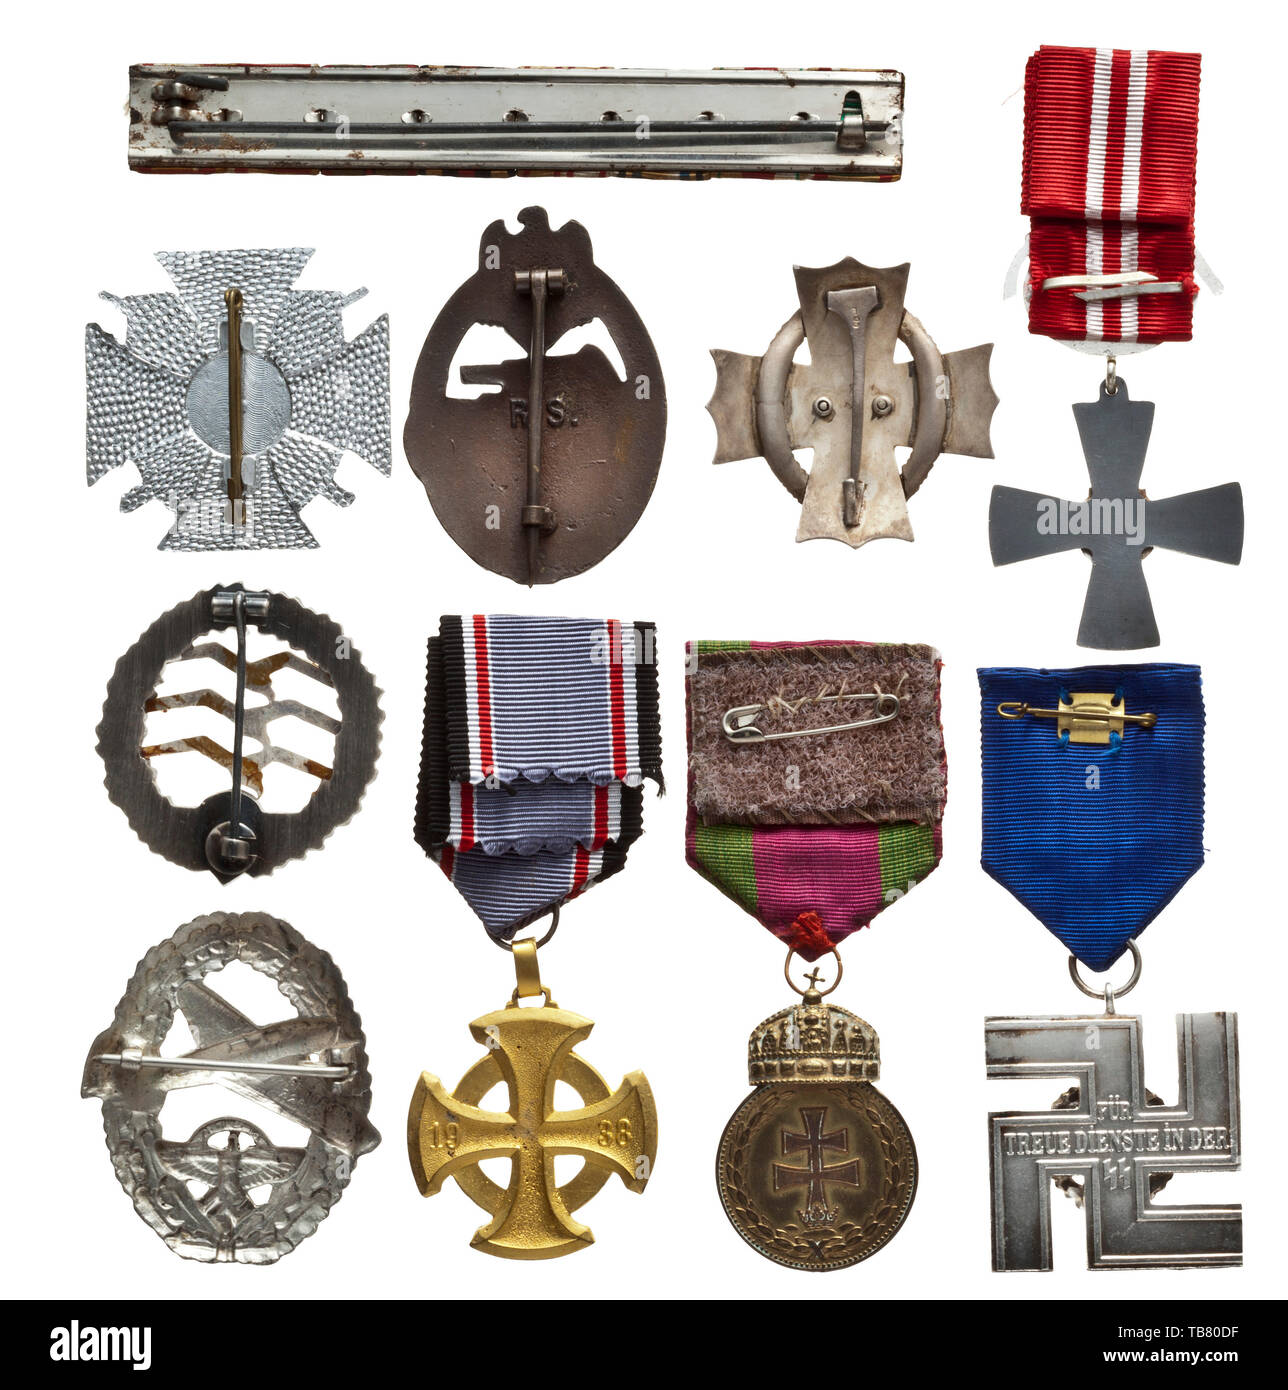 A large collection of copies and forgeries, More than 200 modern copies of decorations, predominately of the Third Reich and royal and imperial (Austria-Hungarian) monarchy. Production quality from the 1970s and 1980s (Souval etc.). Also, a few original and less valuable decorations as well as field orders clasps. A very extensive lot. Pre-auction viewing recommended. medal, decoration, medals, decorations, badge of honour, badge of honor, badges of honour, badges of honor, object, objects, stills, clipping, clippings, cut out, cut-out, cut-outs, historic, historical 20th c, Editorial-Use-Only - Stock Image